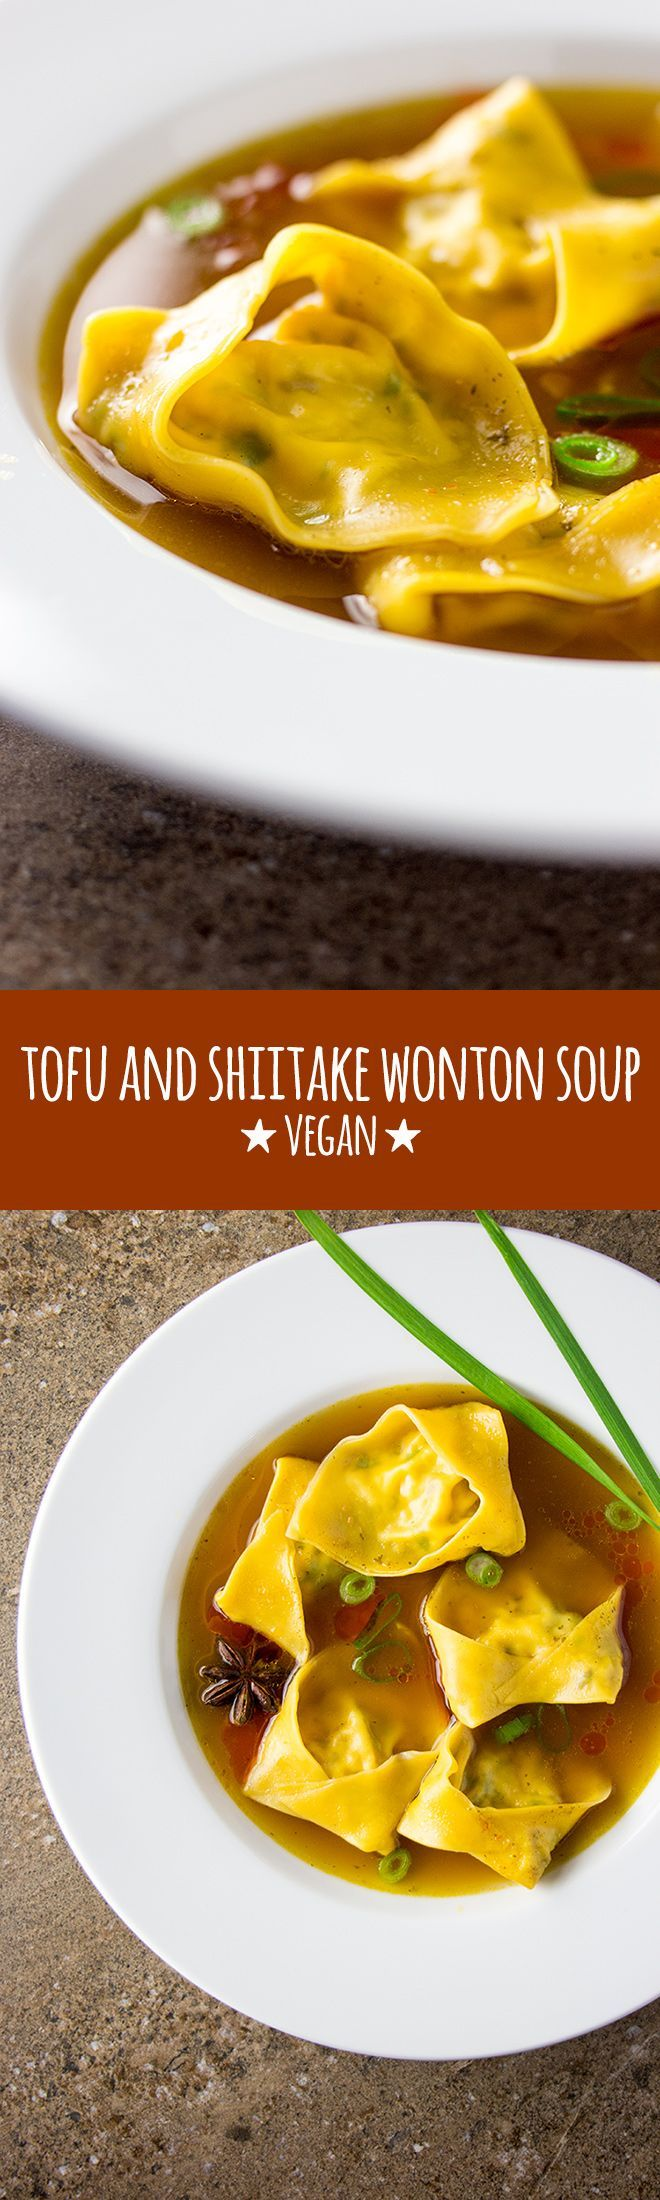 Wonton soup with homemade tofu and shiitake mushroom wontons, swimming in a rich…